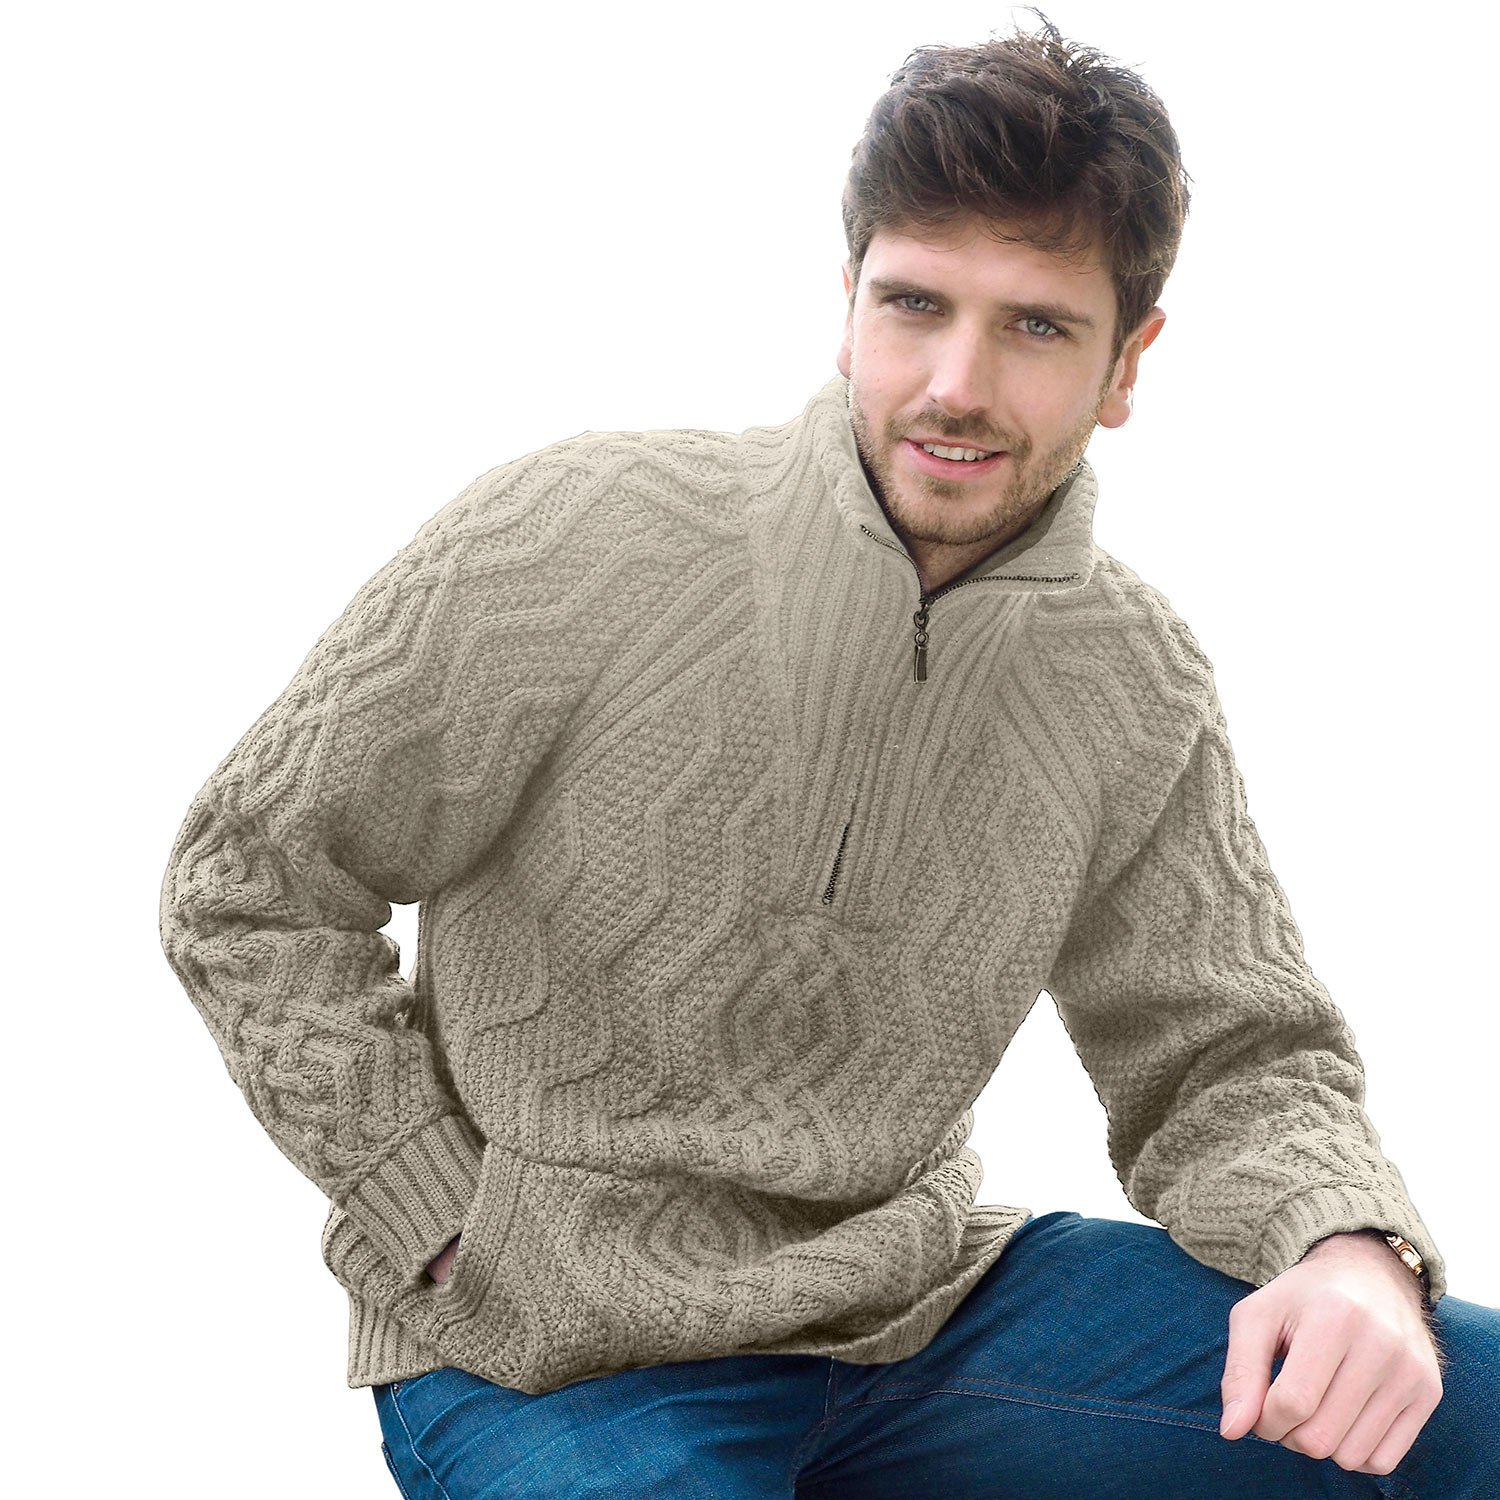 Men's Irish Aran Sweater with Kangaroo Style Pocket & Half Front Zip from West End Knitwear